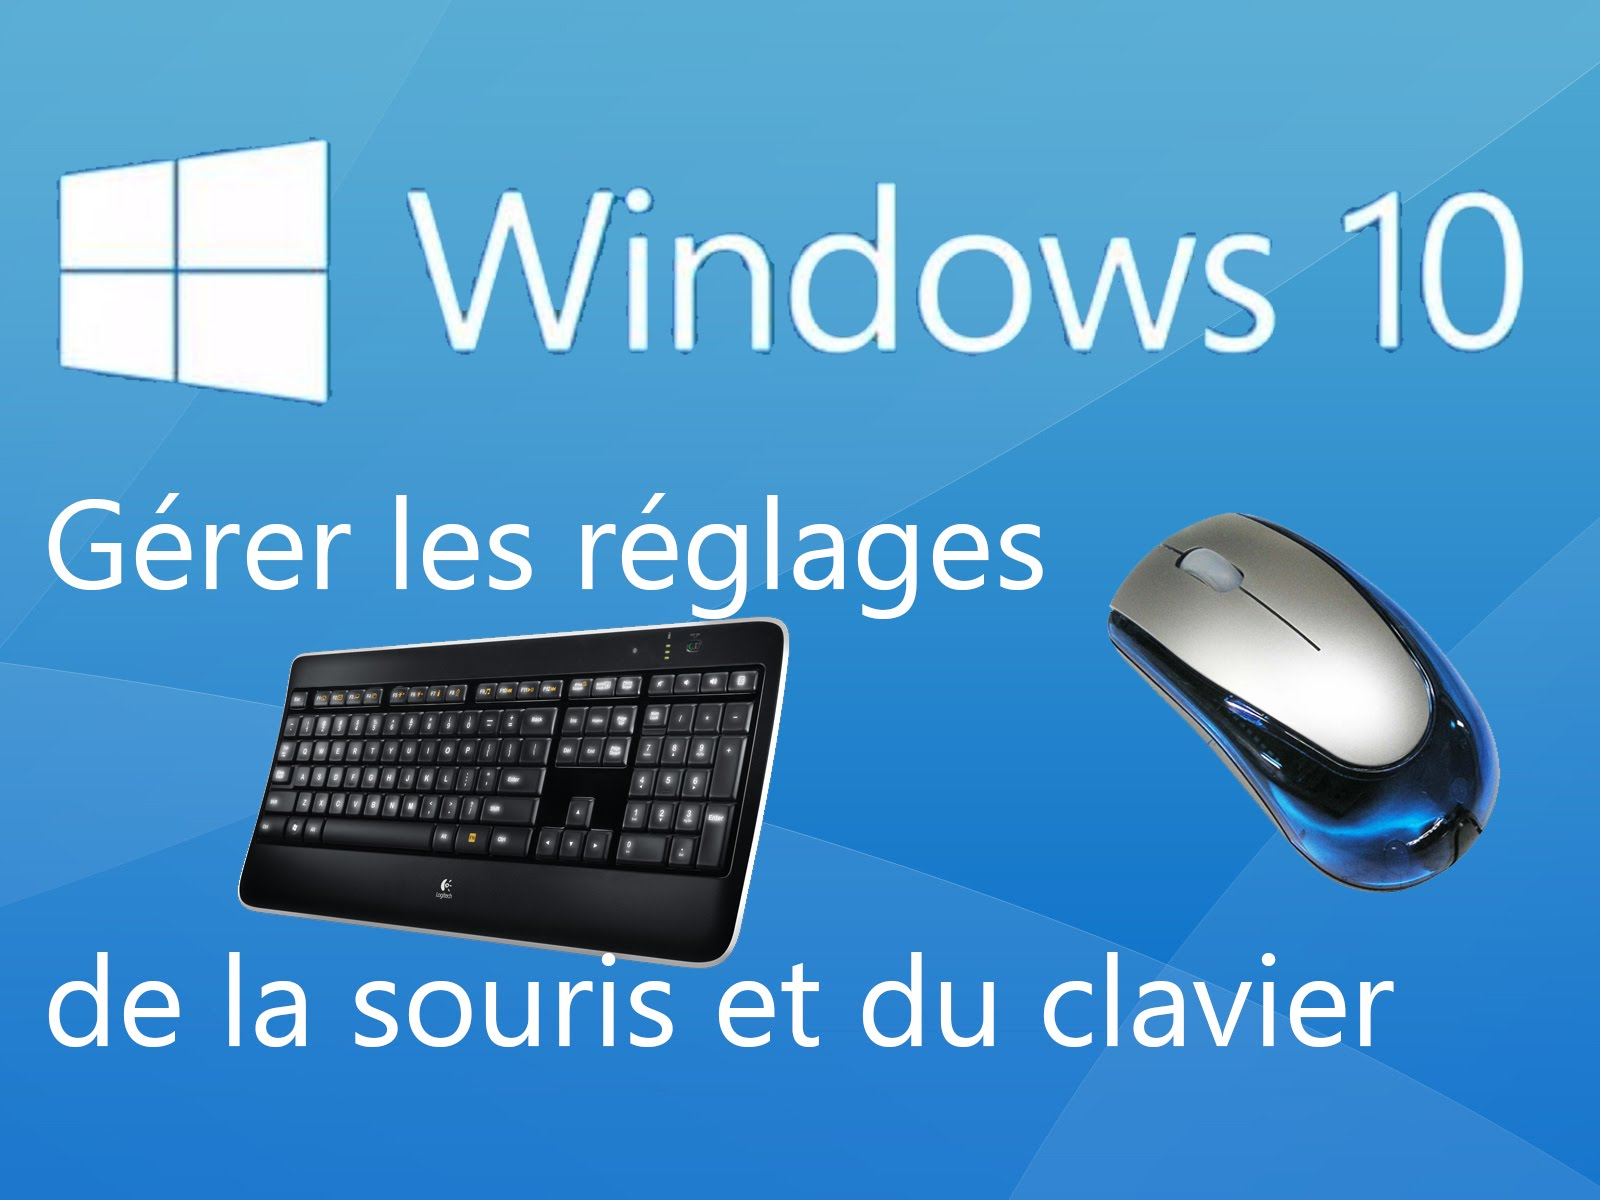 souris et clavier ne fonctionne plus windows 10